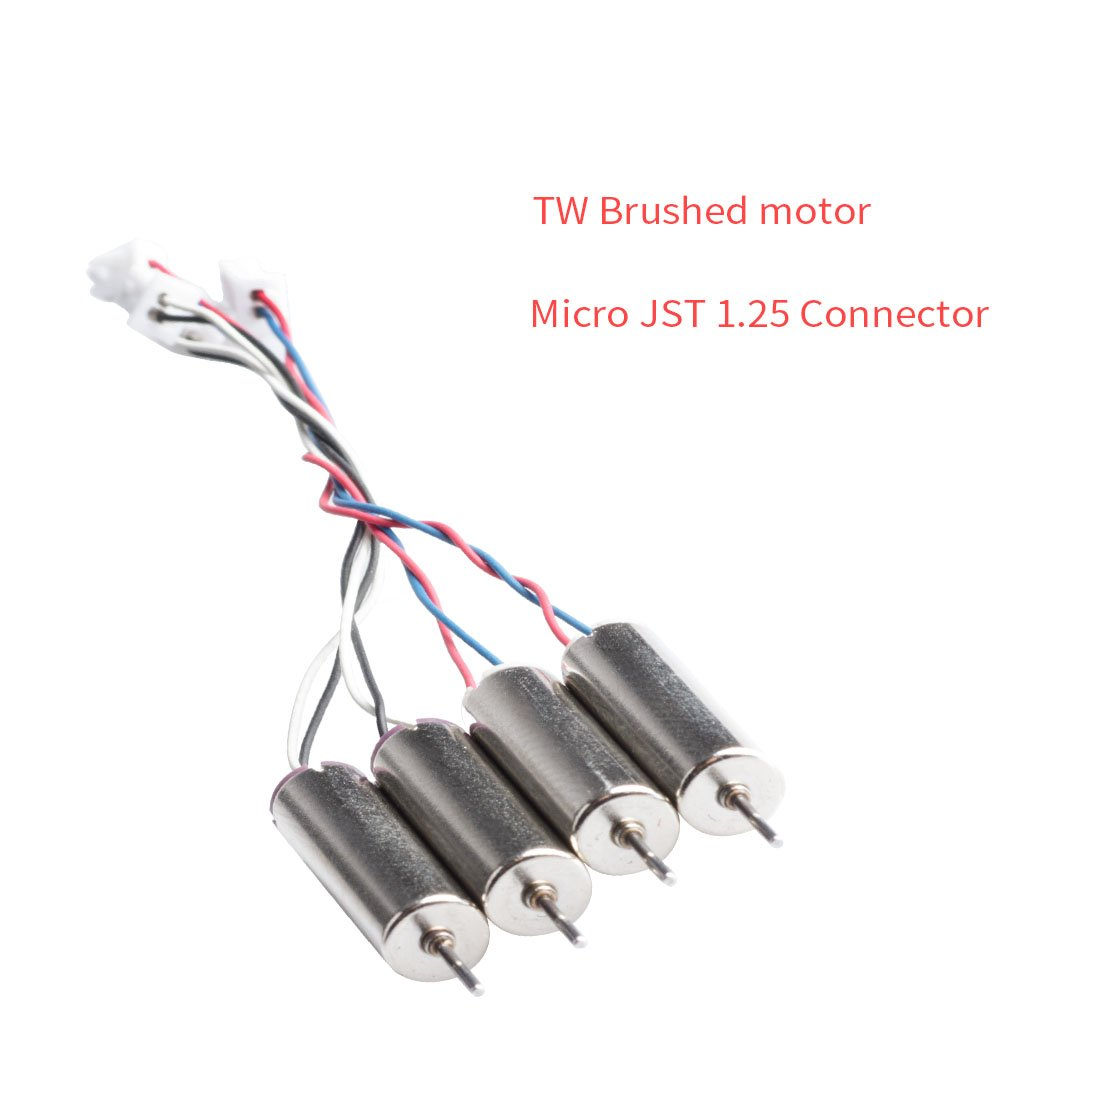 6x15mm Motor 3.7V 17500KV TW Sauce Edition with Micro JST 1.25 Plug for Tiny Whoop Blade Inductrix AKK 3 Sets 12pcs